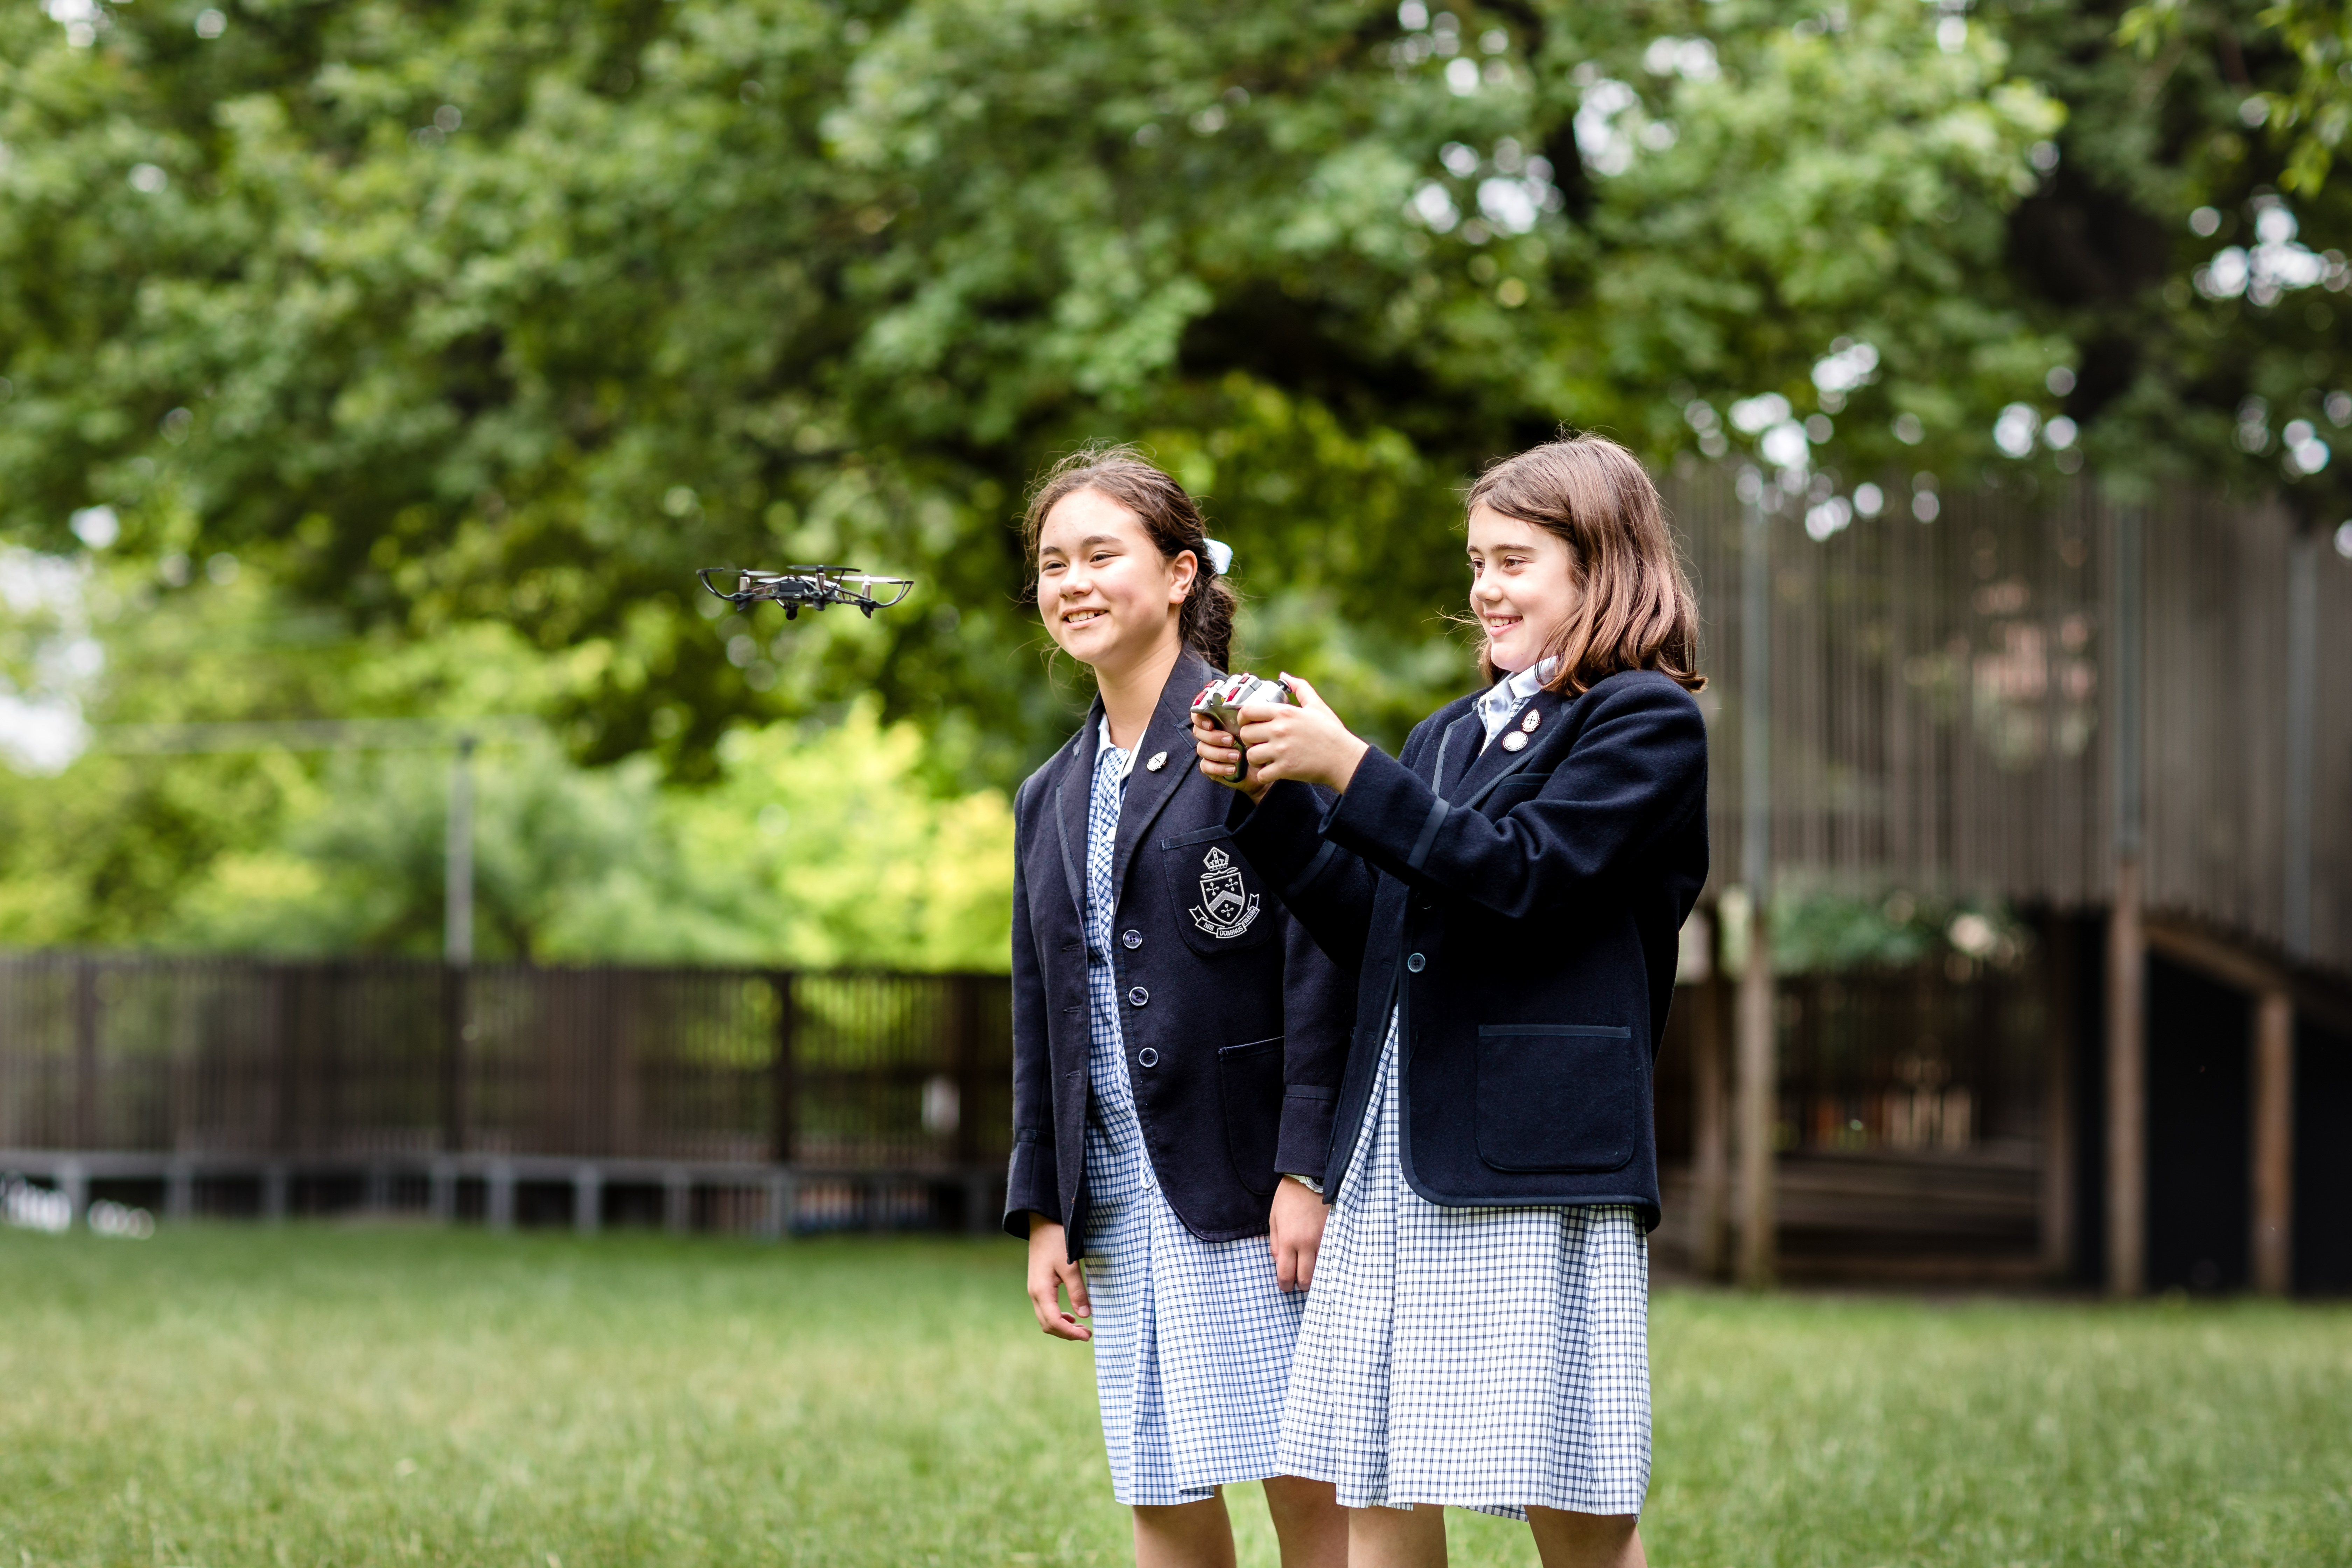 Drone initiative flying at Melbourne Girls' Grammar